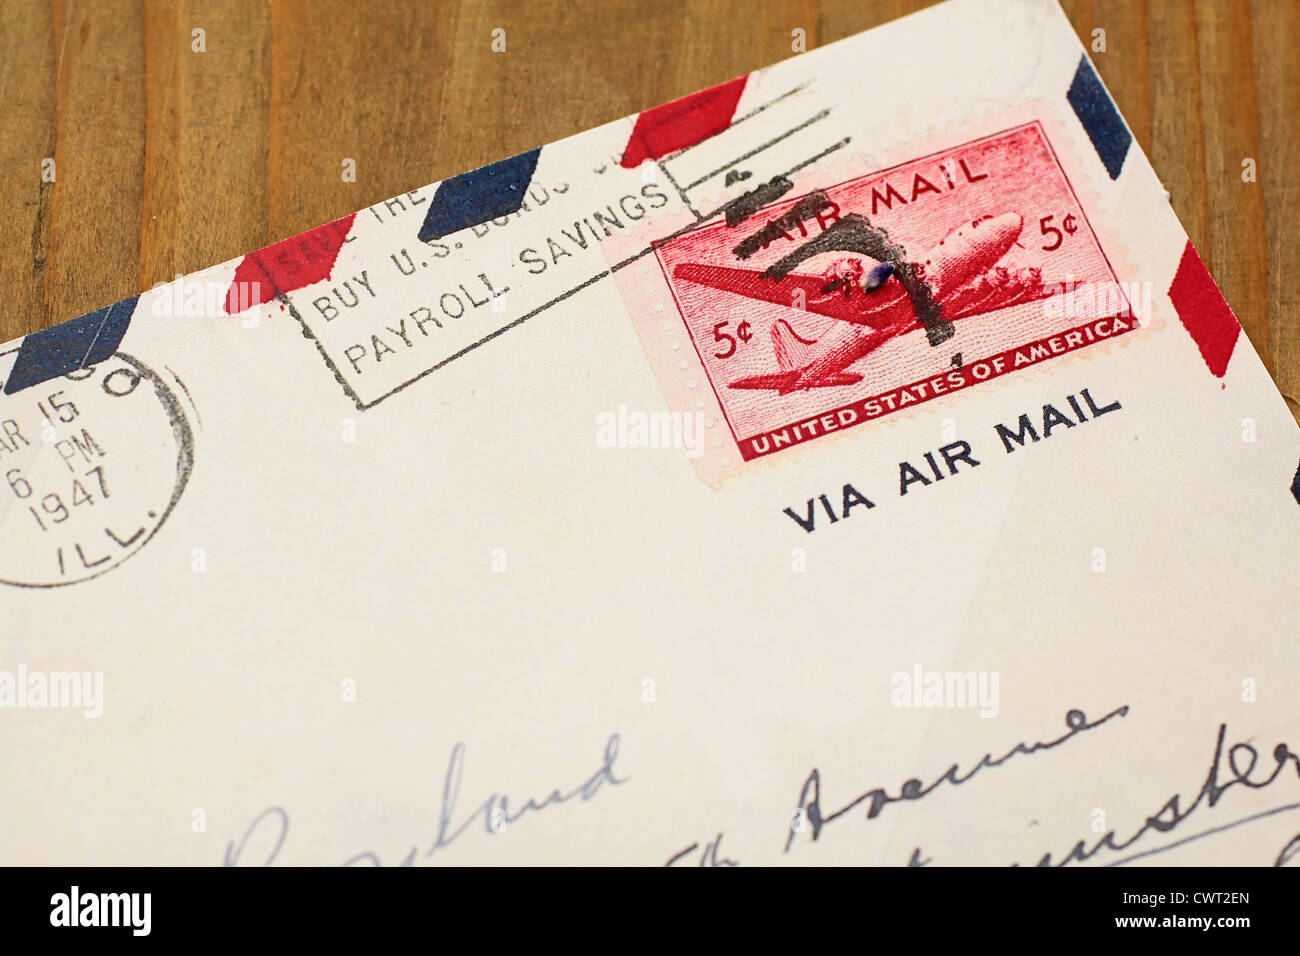 Close up of old airmail letter from the US on wooden desk - Stock Image